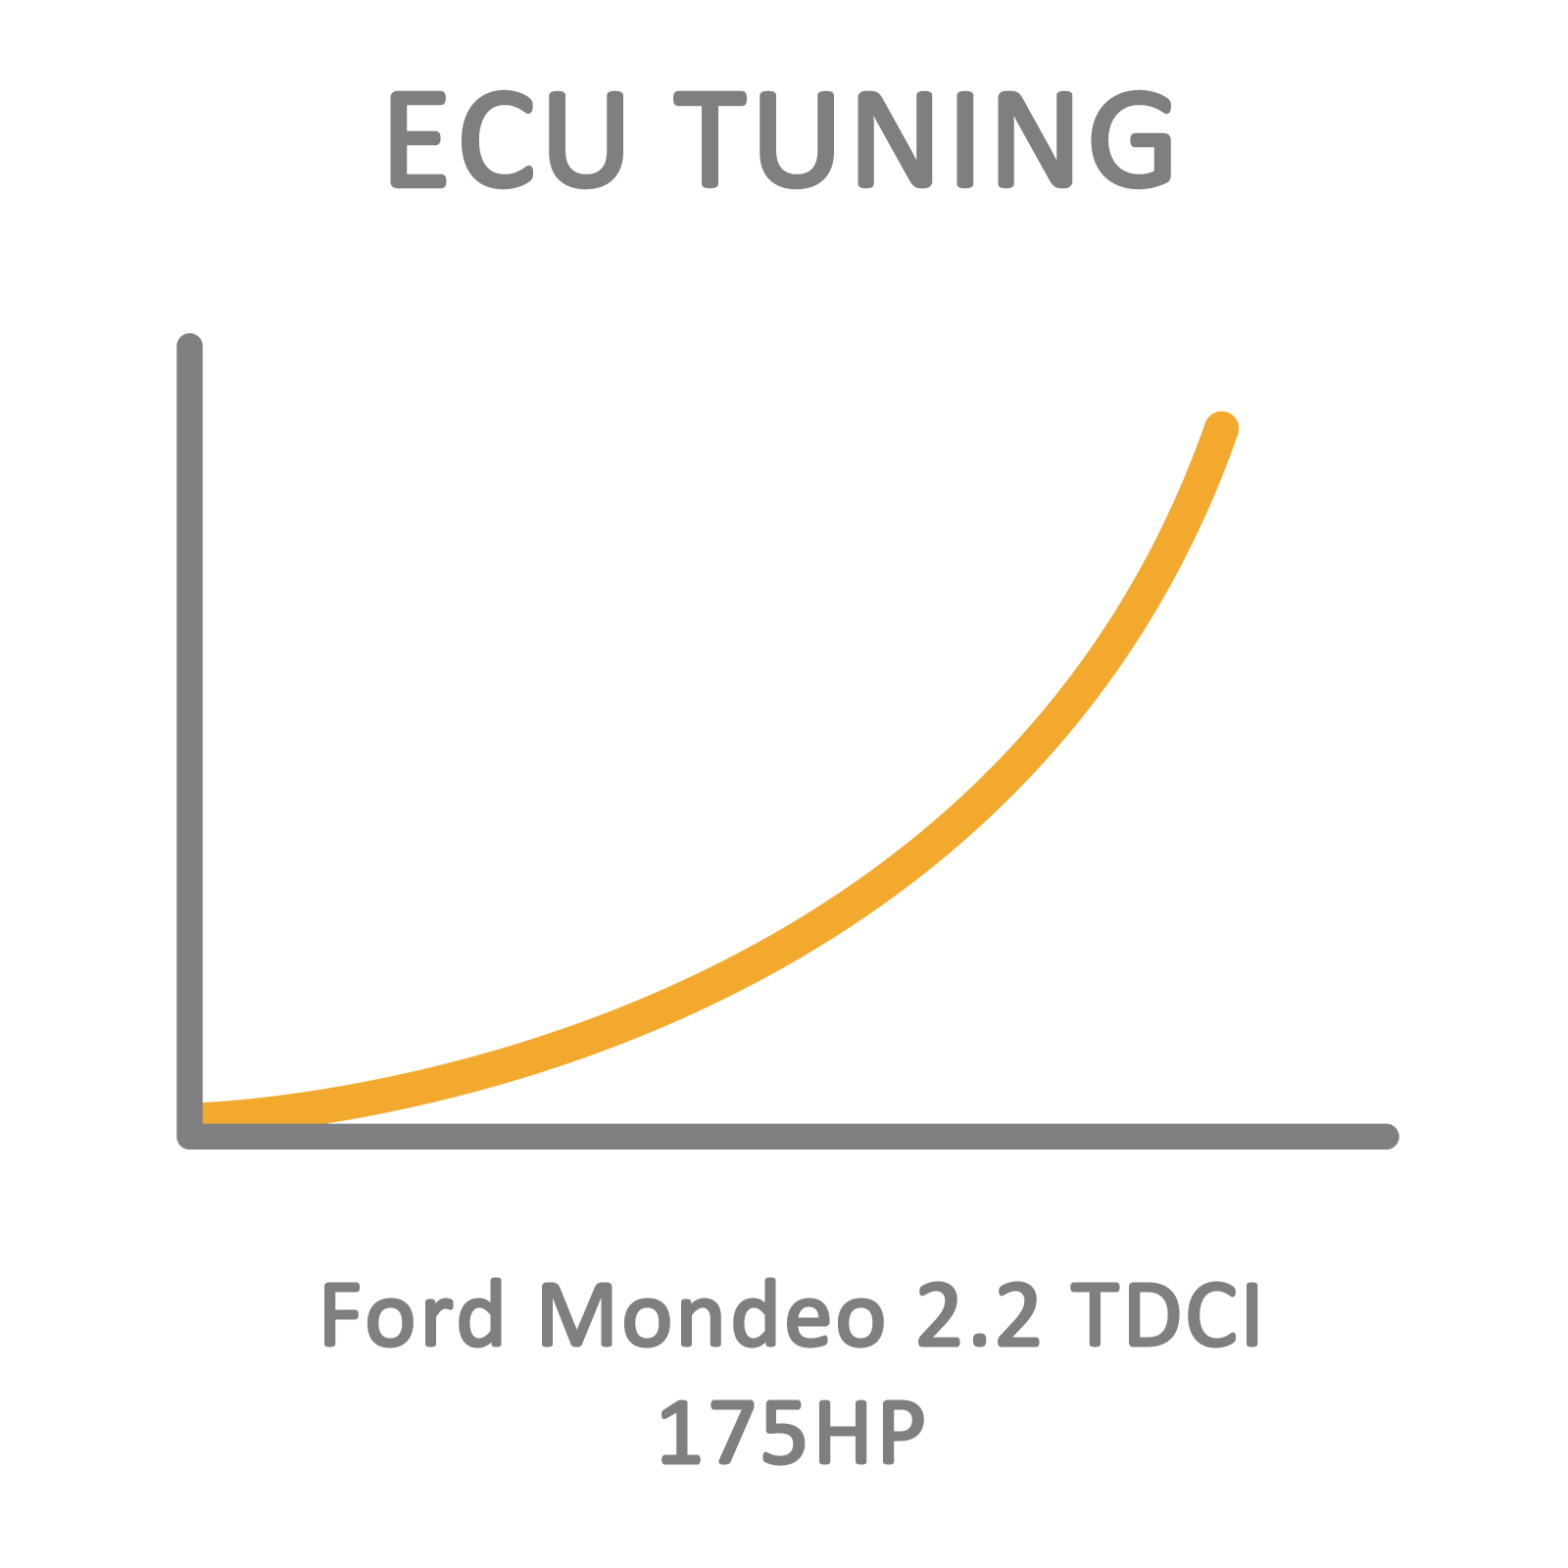 Ford Mondeo 2.2 TDCI 175HP ECU Tuning Remapping Programming